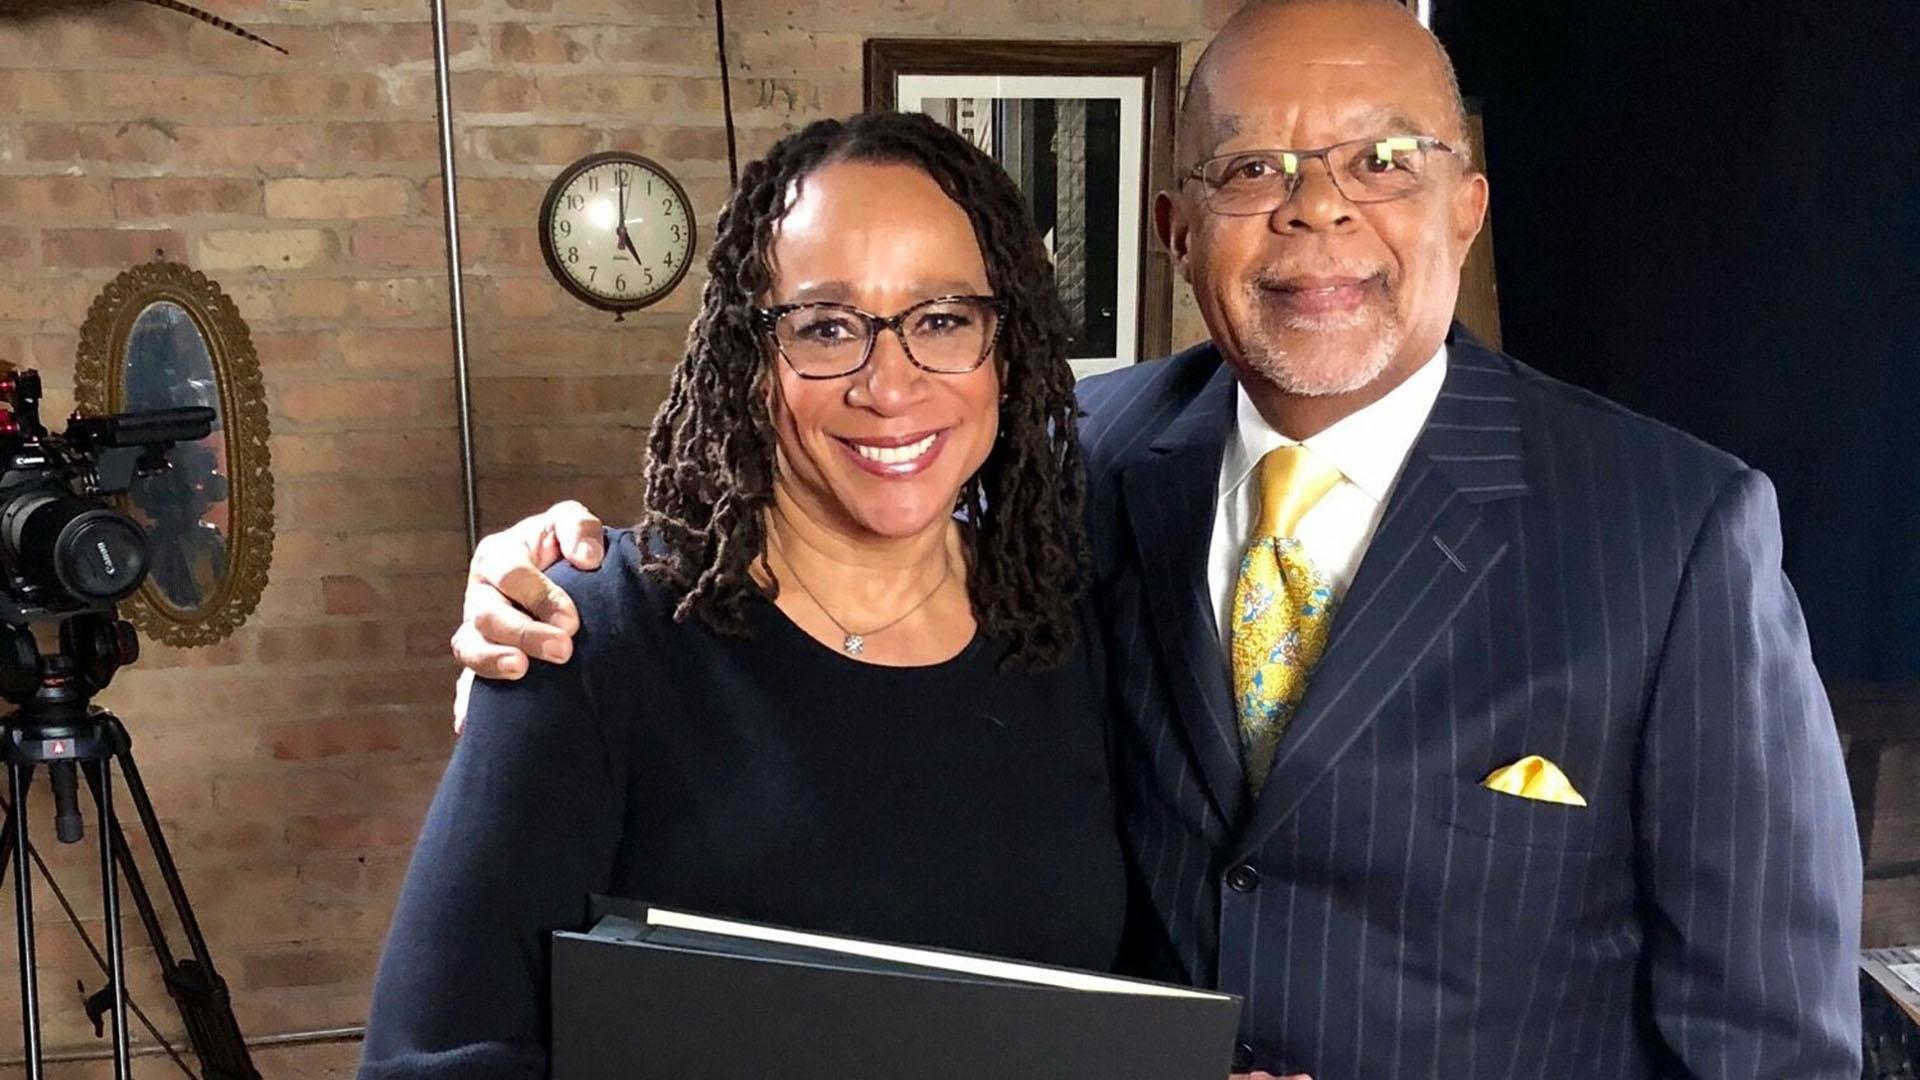 scene from Finding Your Roots